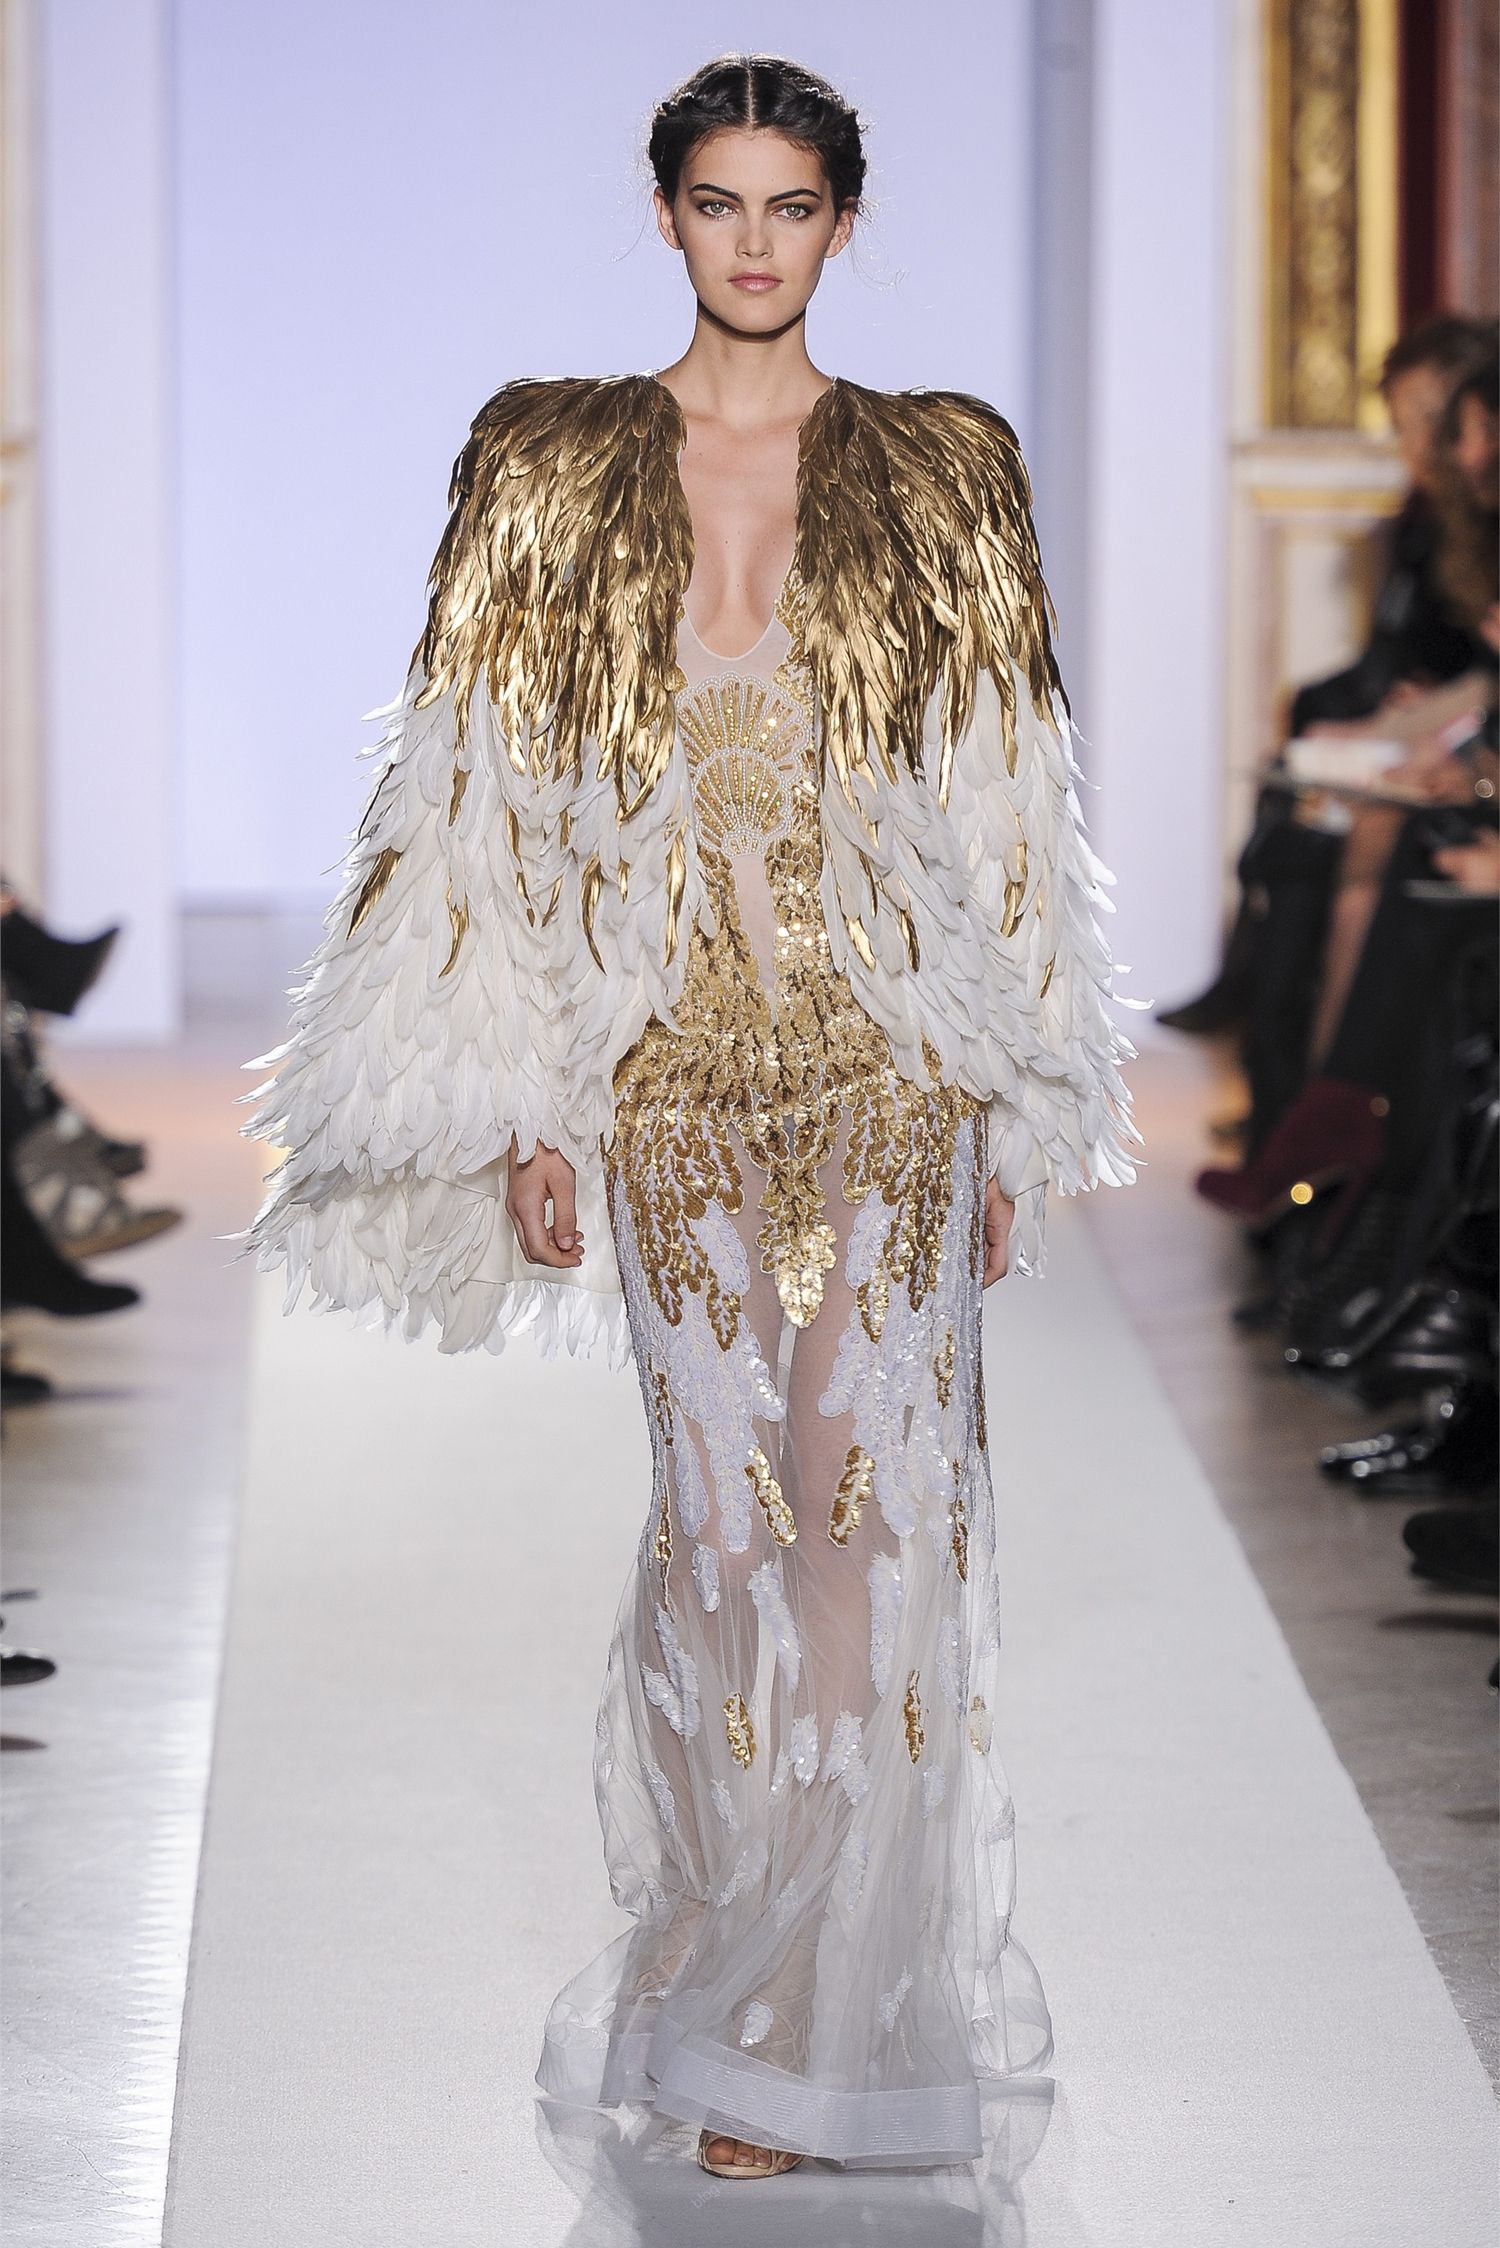 Zuhair Murad White And Gold Dress With Feathered Cloak It Makes Me Think Of Freya S